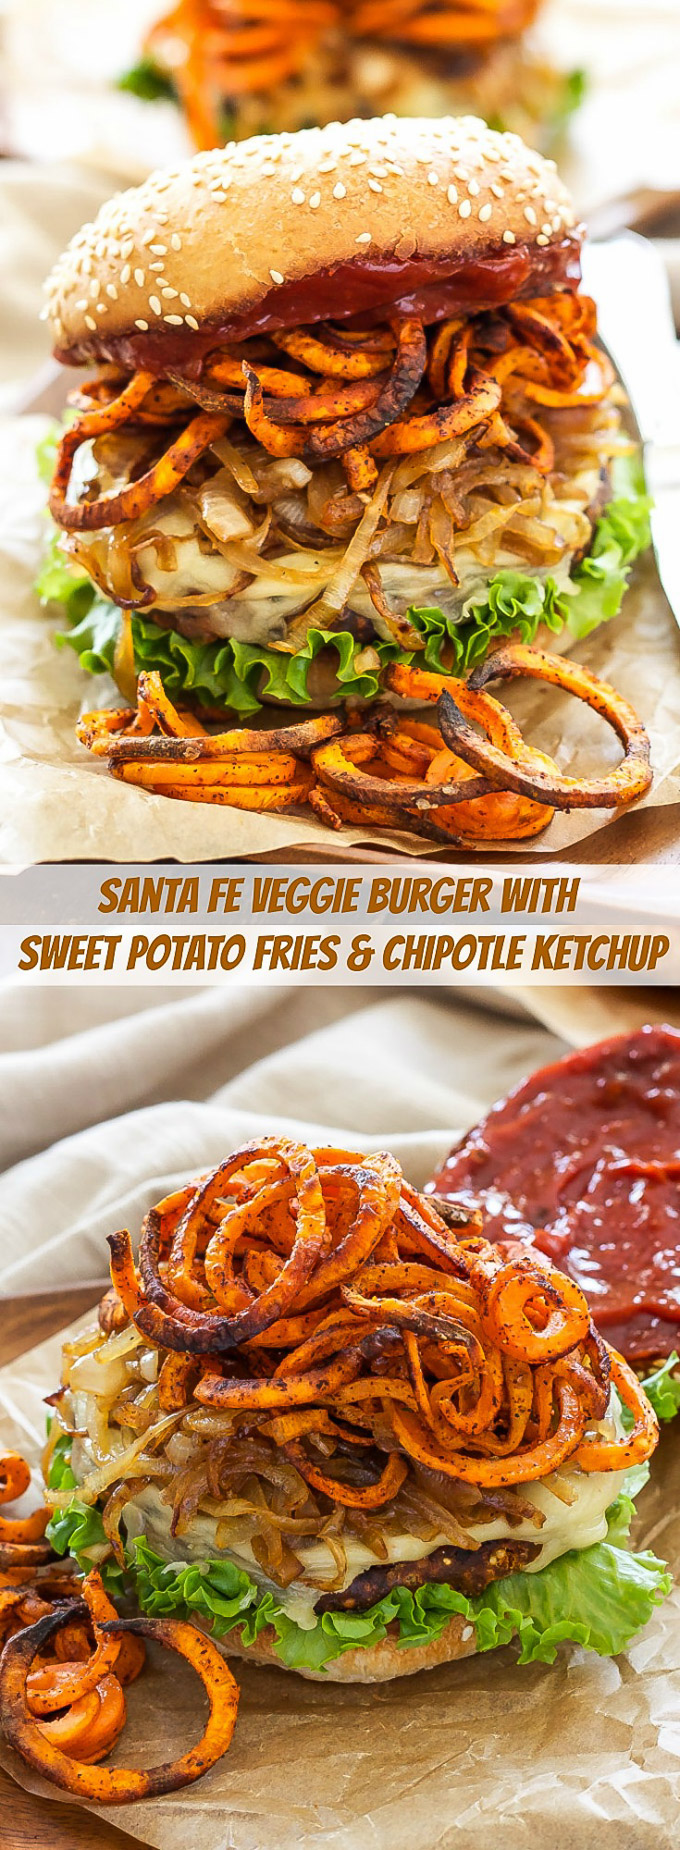 Santa Fe Veggie Burgers with Sweet Potato Fries, Caramelized Onions and Chipotle Ketchup | Veggie burgers loaded with so much flavor, you won't even realize they're meatless!